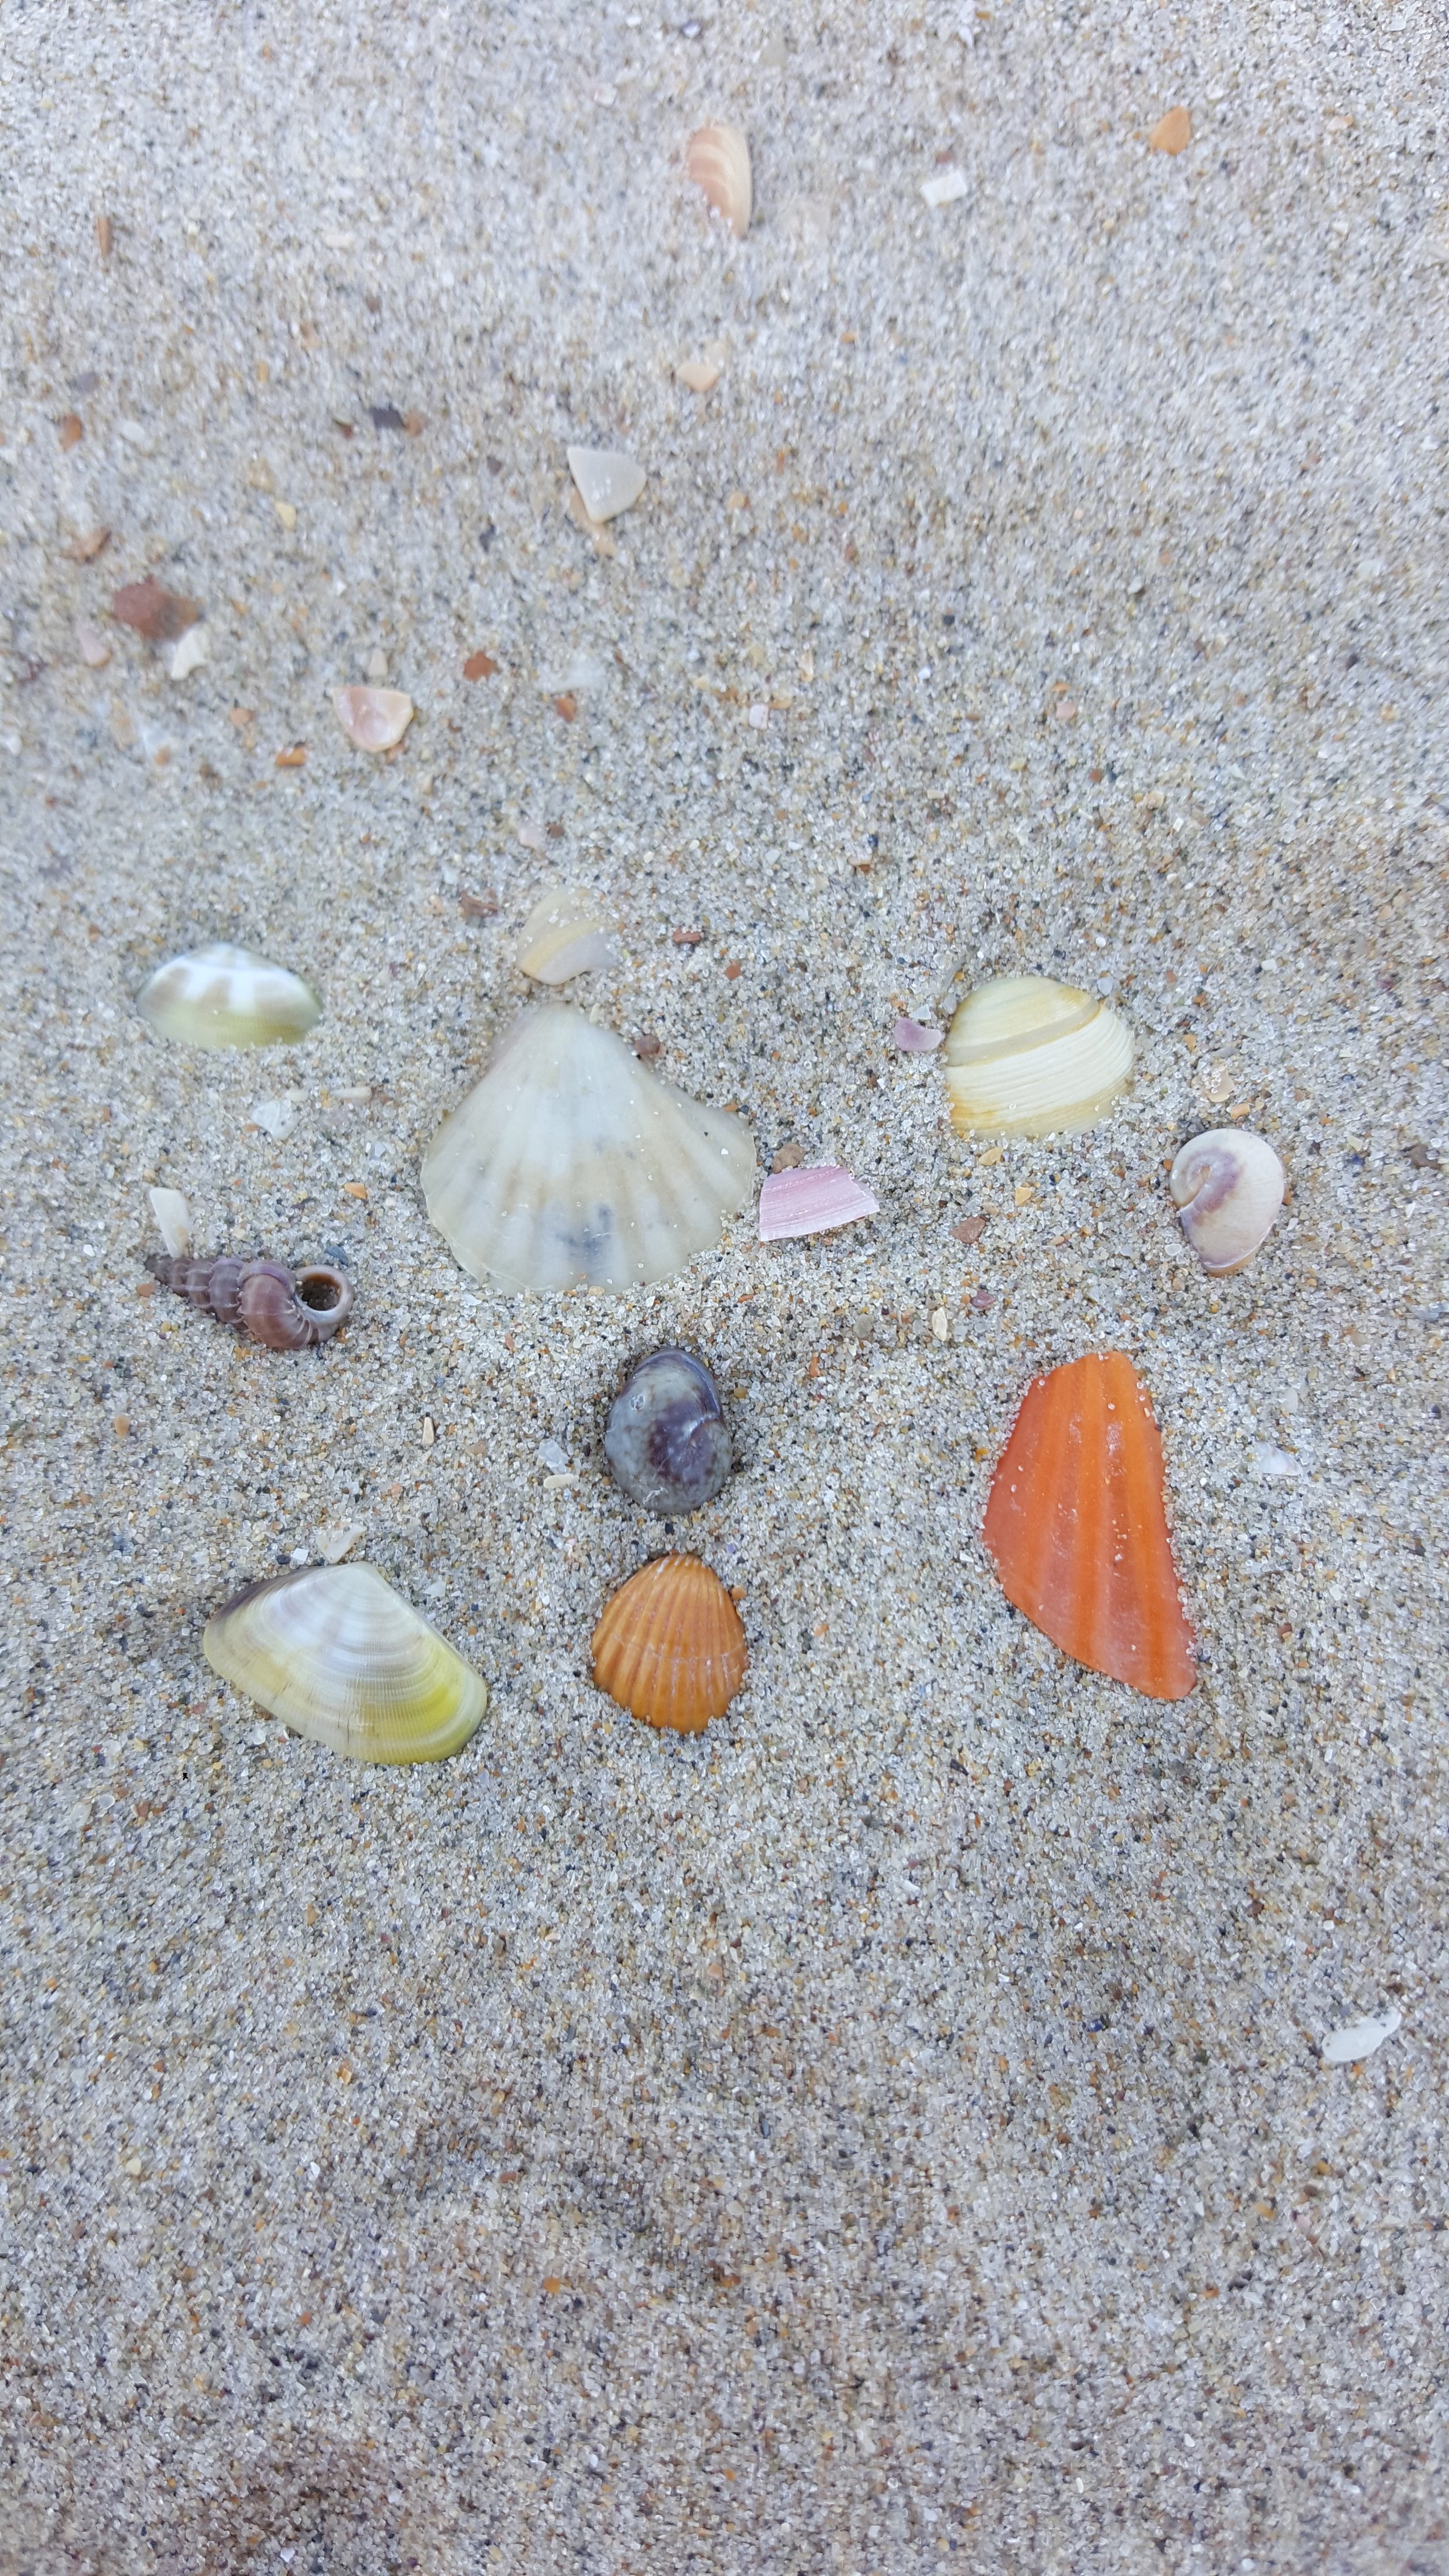 Target speech and language by doing various activities with seashells.